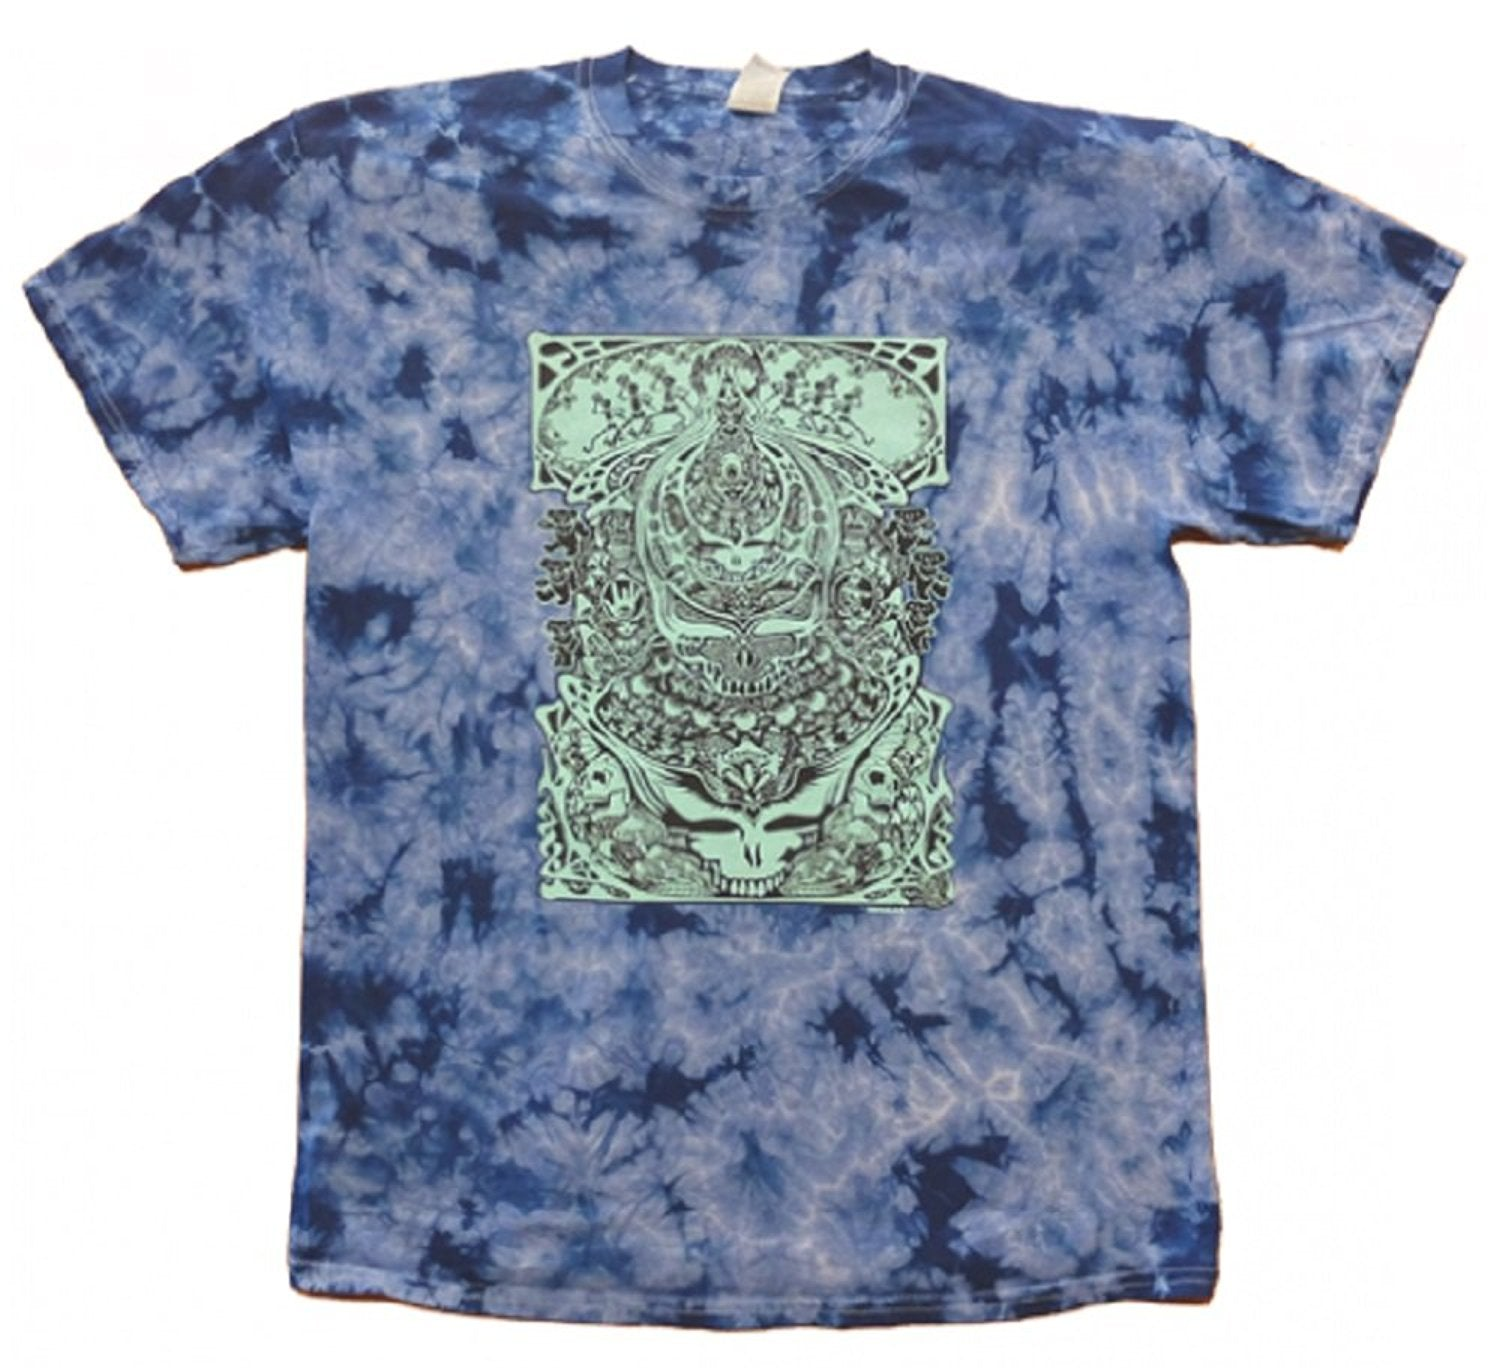 Grateful Dead - Aiko Aiko  Tie Dye T Shirt - Blue